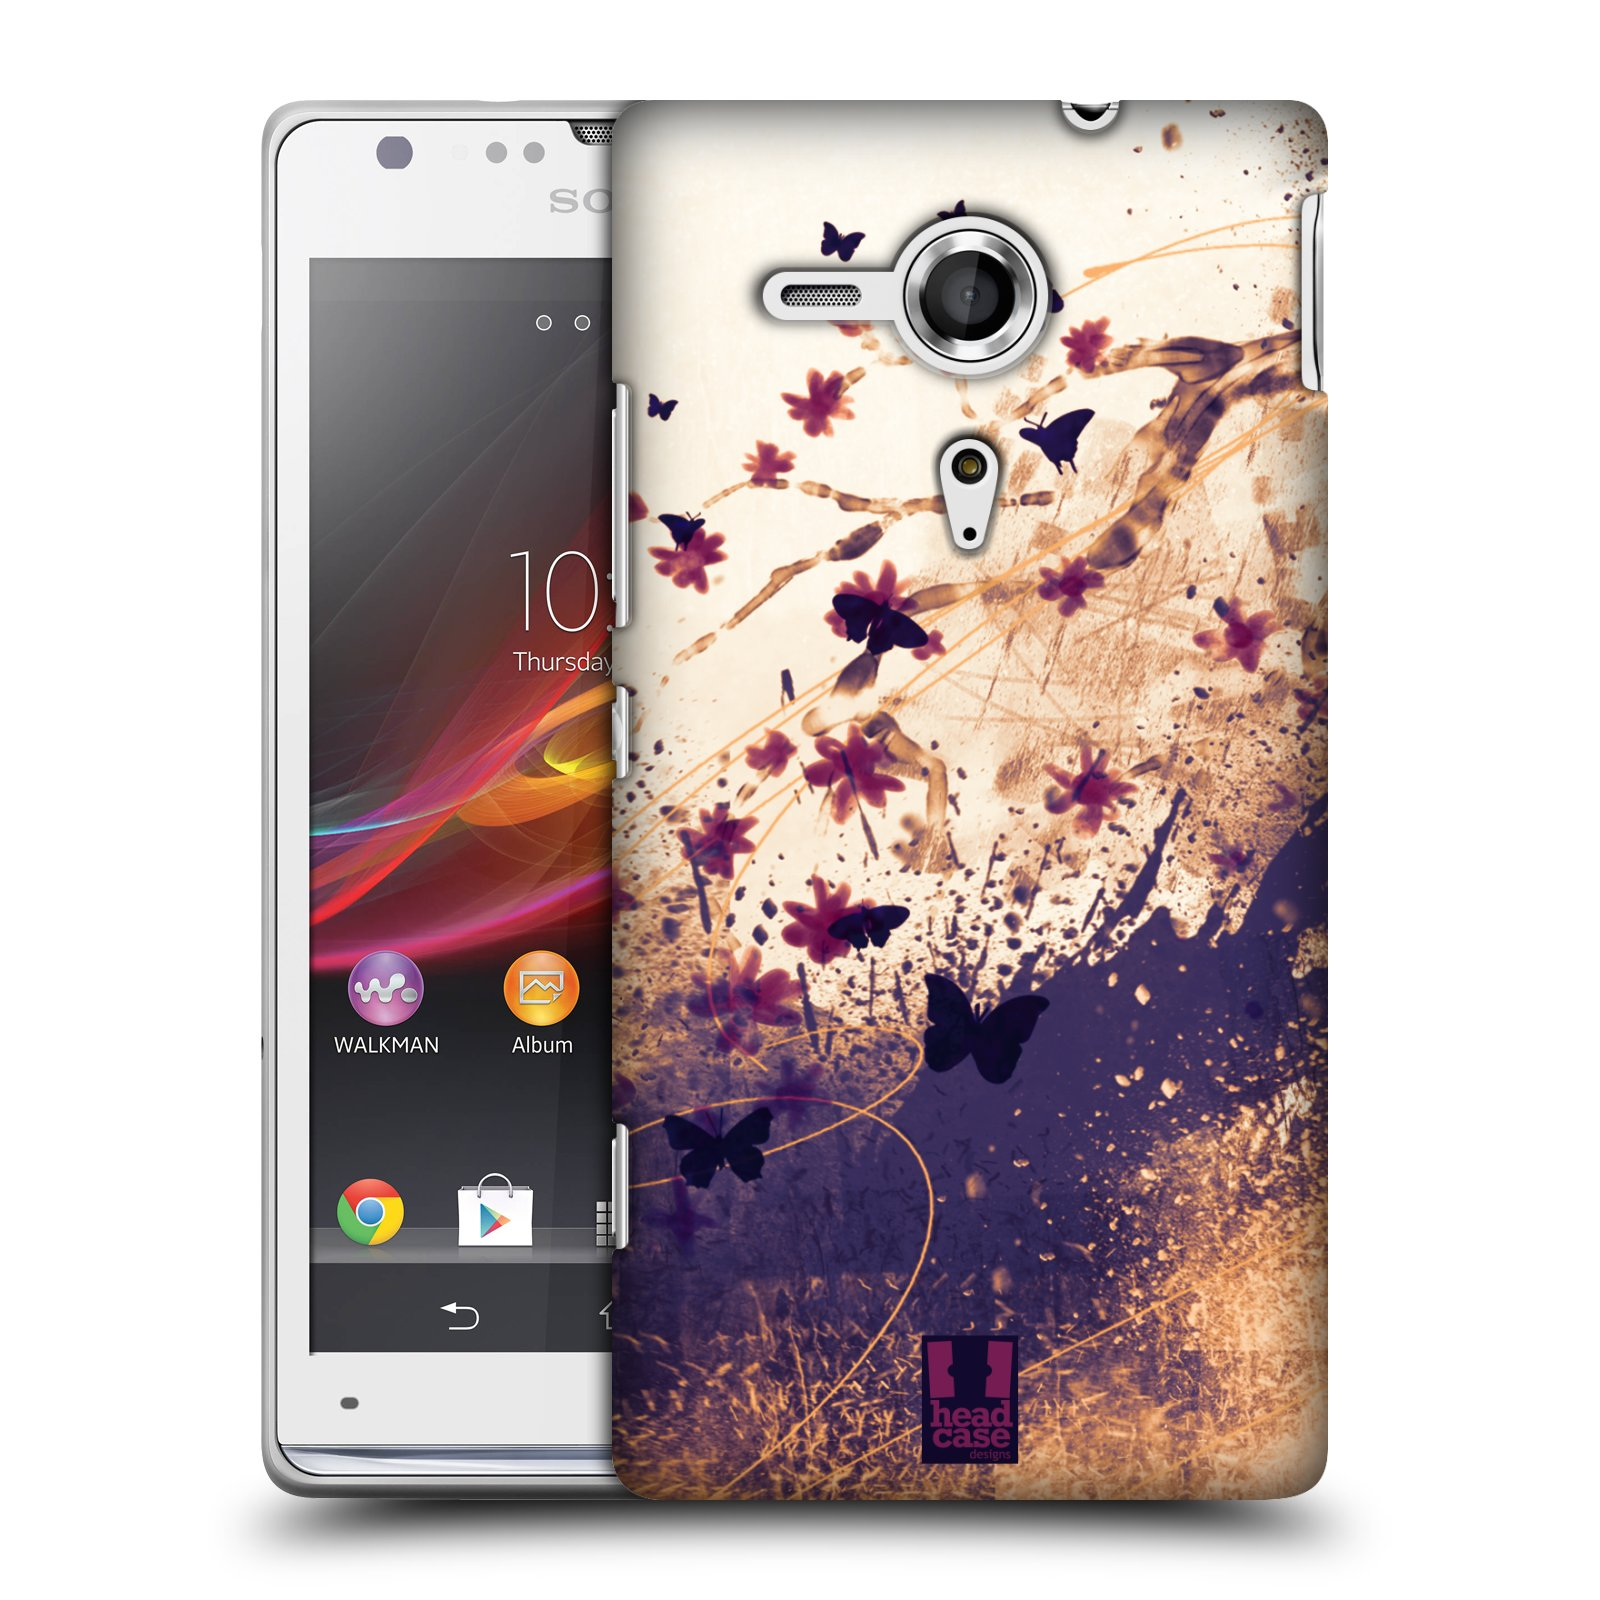 HEAD CASE DESIGNS FLORAL DRIPS CASE COVER FOR SONY XPERIA SP C5303